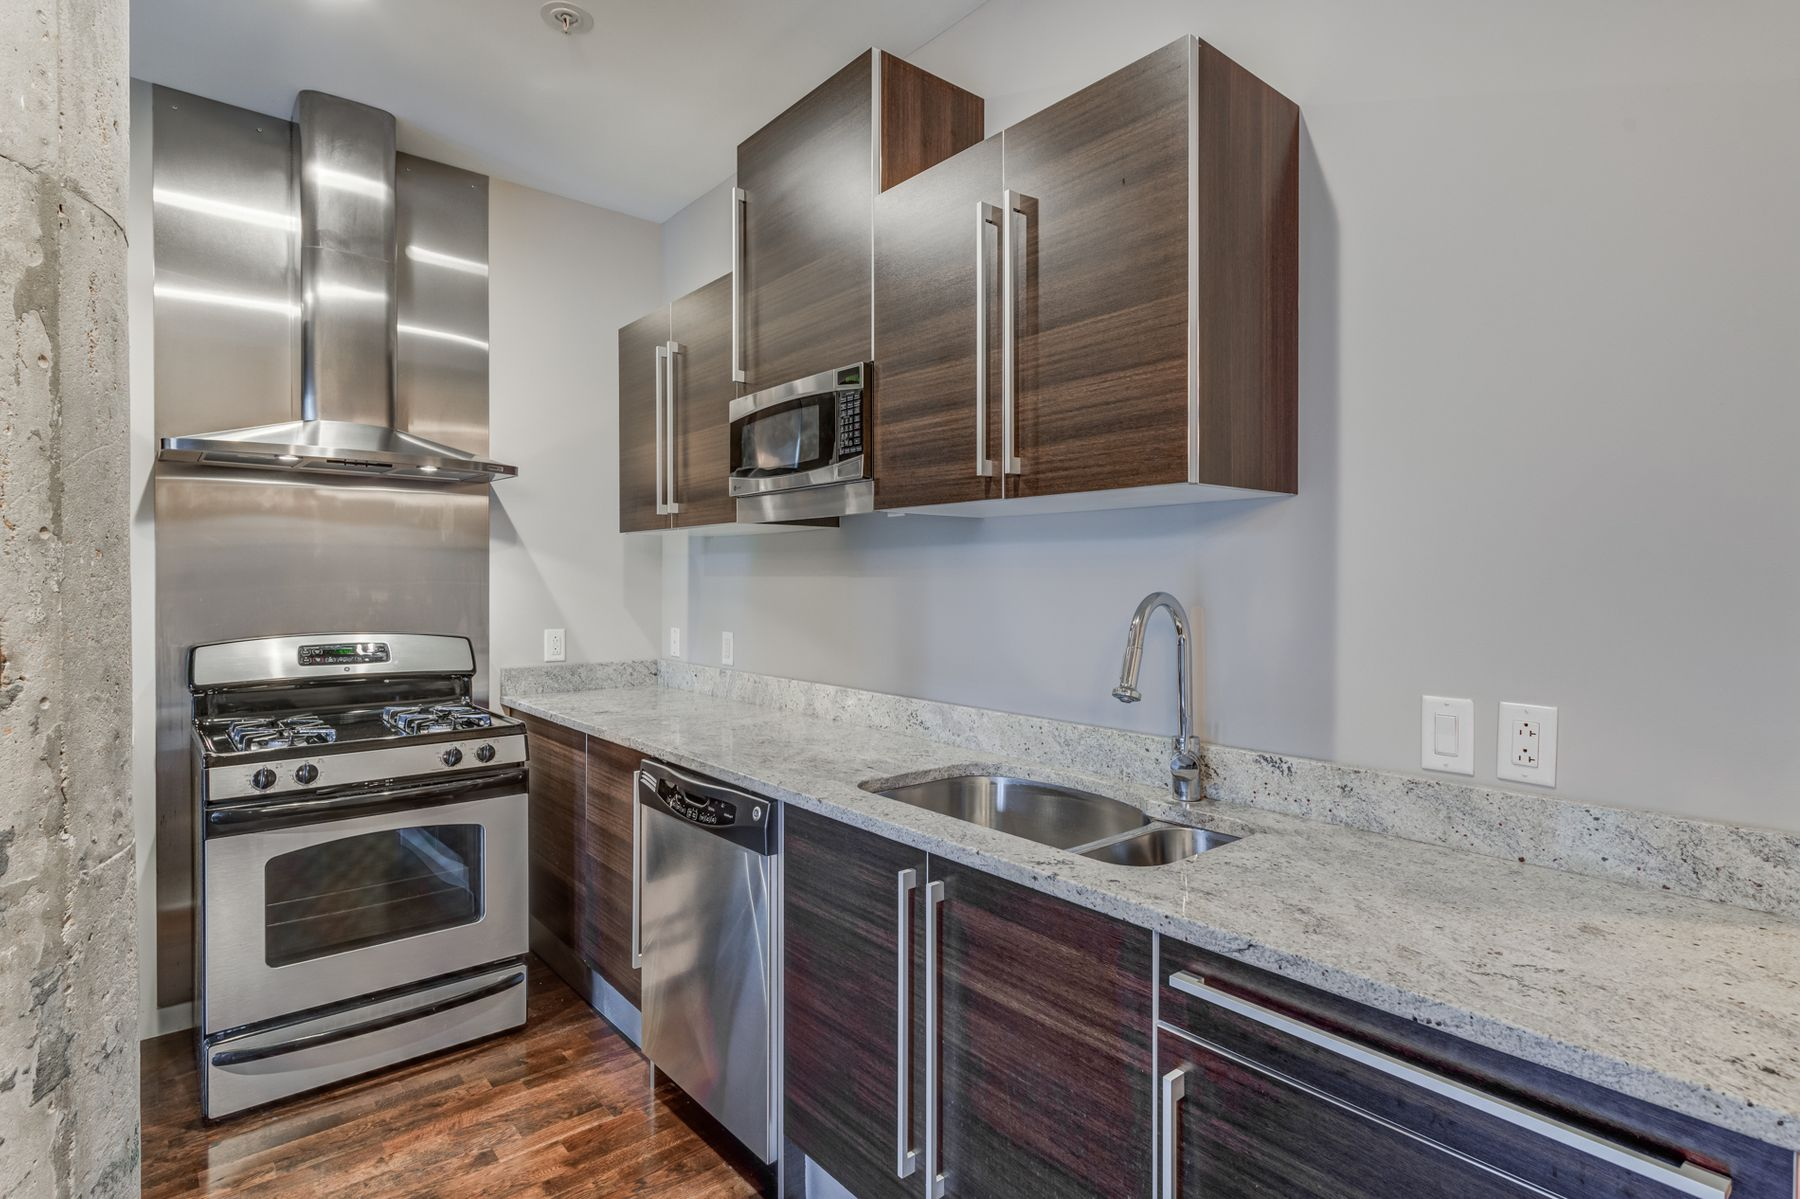 Additional photo for property listing at 4100 Forest Park Ave #122 St. Louis, Missouri 63108 United States